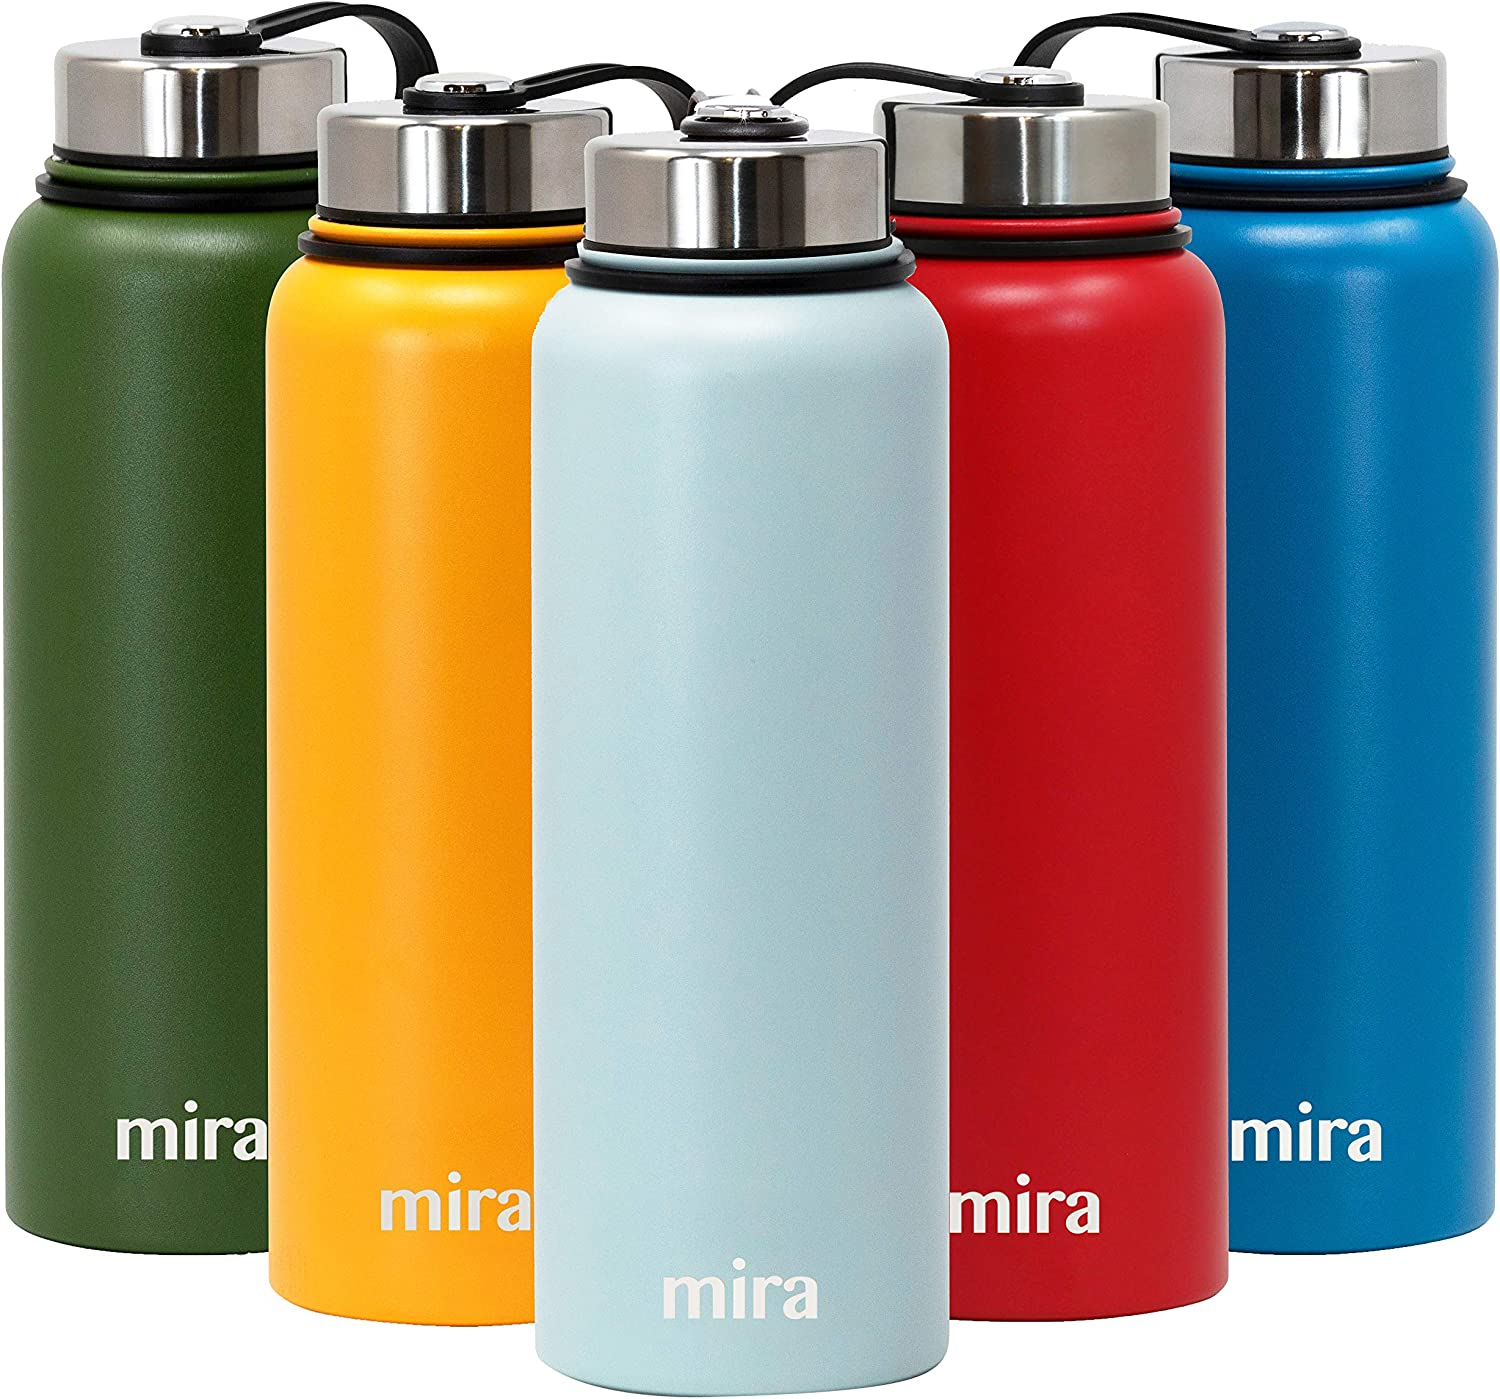 MIRA 40 oz Stainless Steel Vacuum Insulated Wide Mouth Water Bottle   Thermos Keeps Cold for 24 hours, Hot for 12 hours   Double Walled Powder Coated Travel Flask   Pearl Blue